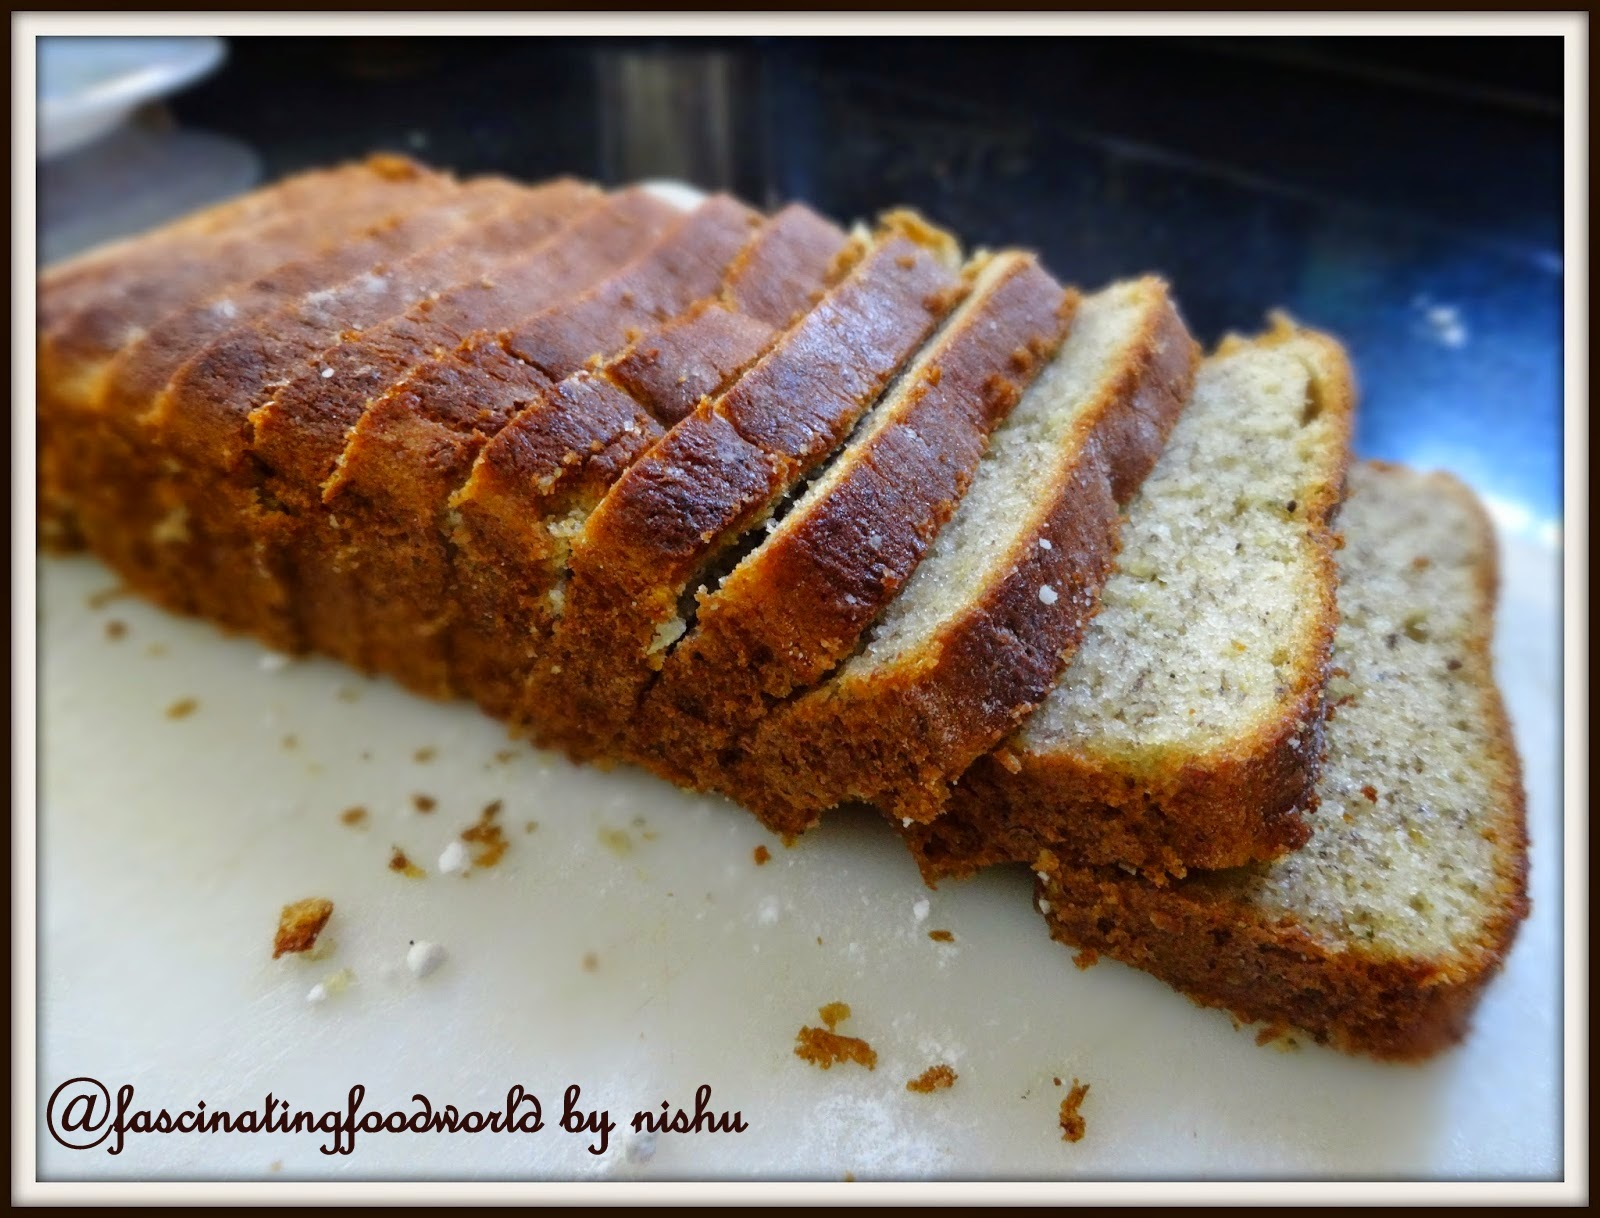 http://www.fascinatingfoodworld.com/2014/03/egg-less-banana-loaf-cake-prefect-tea.html